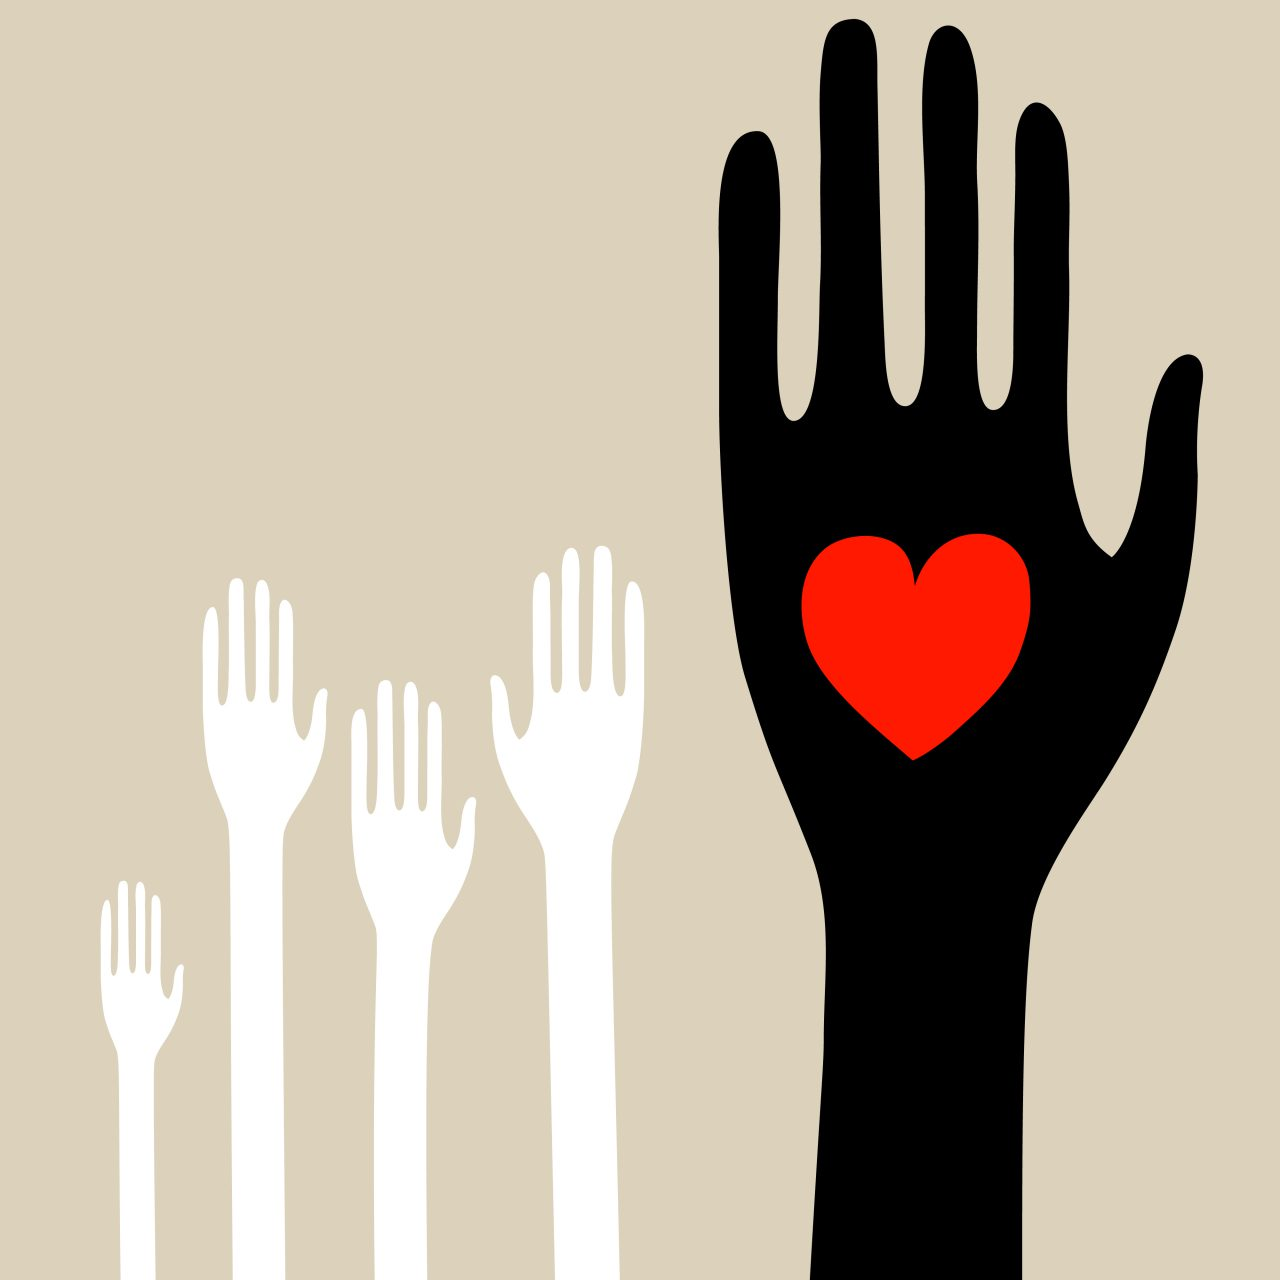 How to Lead with Compassion but Not Be a Pushover